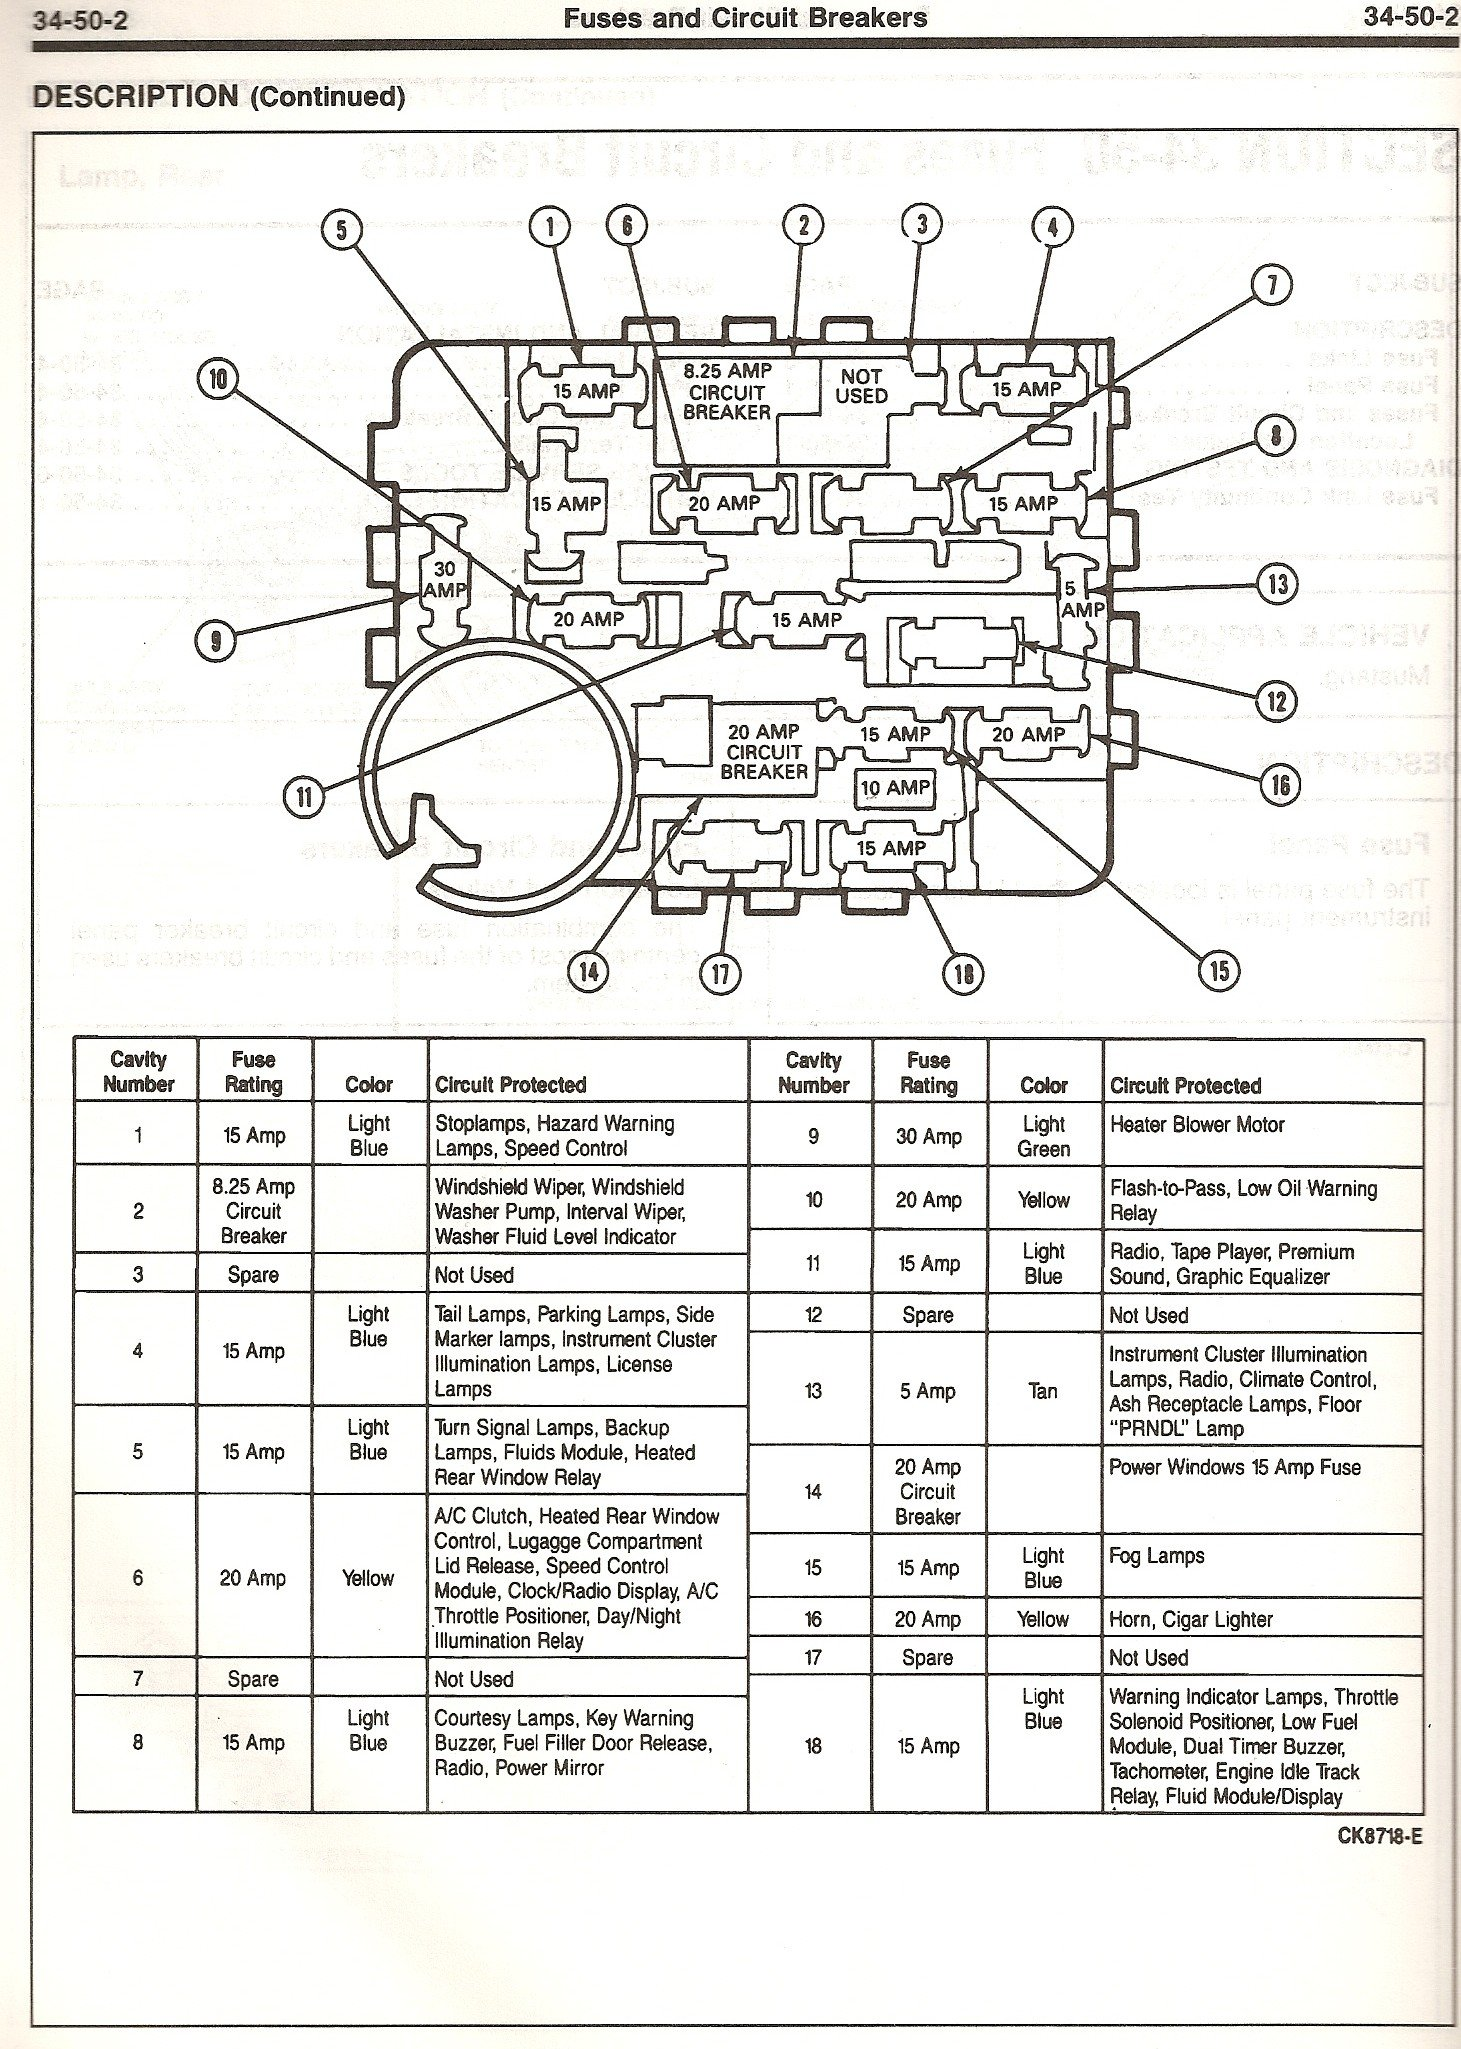 hight resolution of tags 2006 mustang fuse diagram 2006 ford van fuse box diagram 2006 ford mustang fuse box diagram 2006 ford e350 fuse diagram 2006 ford escape fuse box